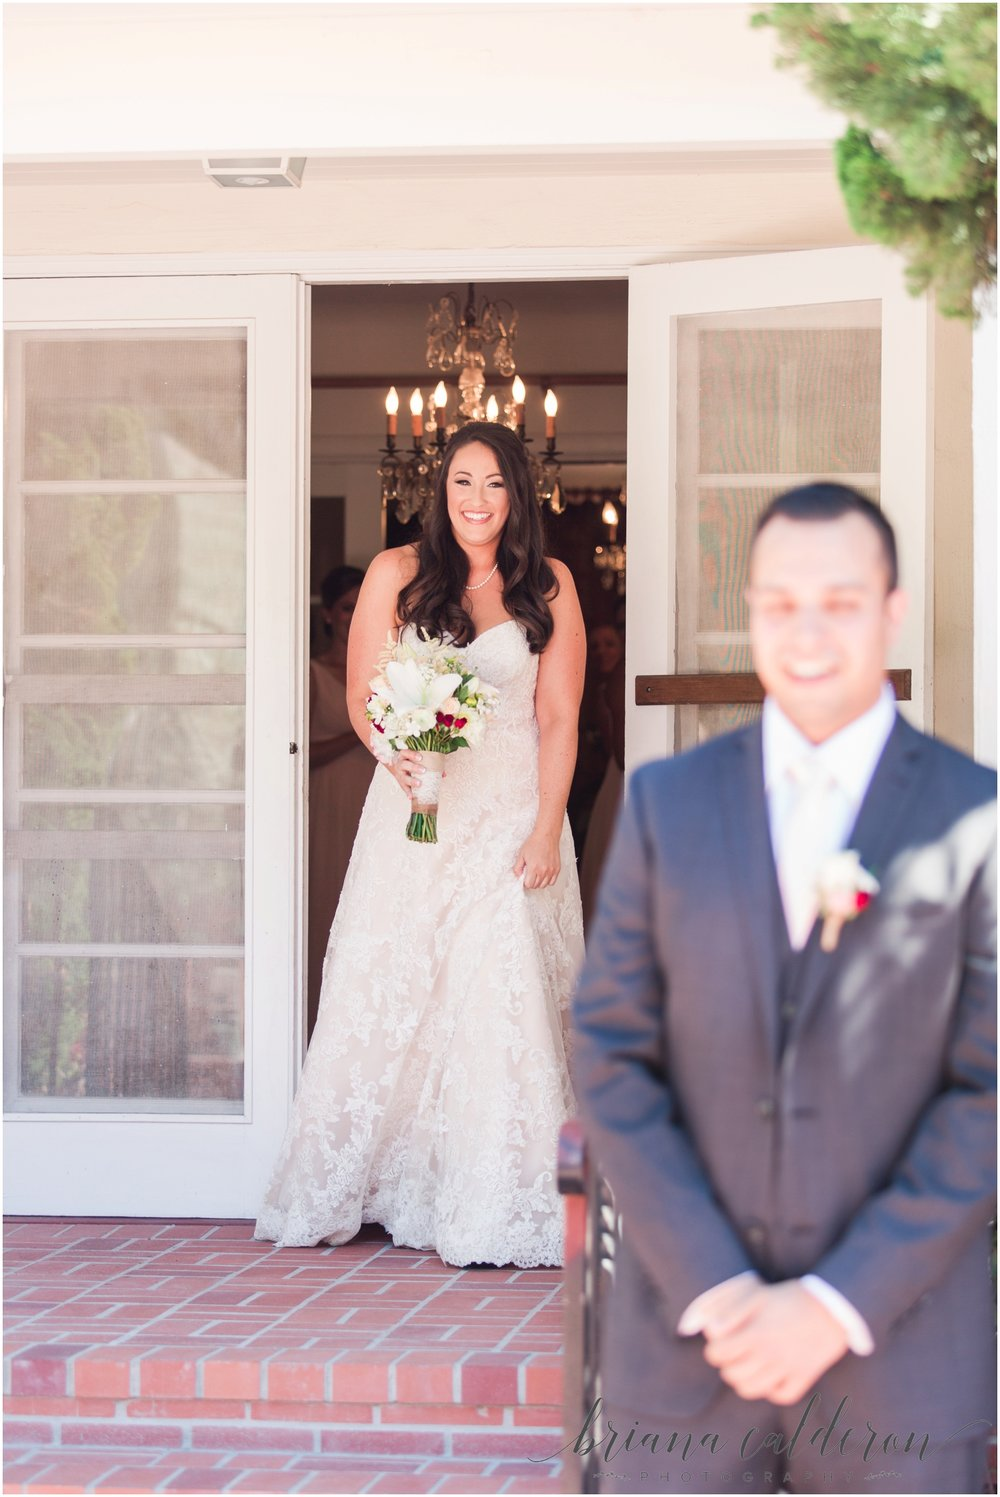 Bargetto Winery Wedding photos by Briana Calderon Photography_0919.jpg